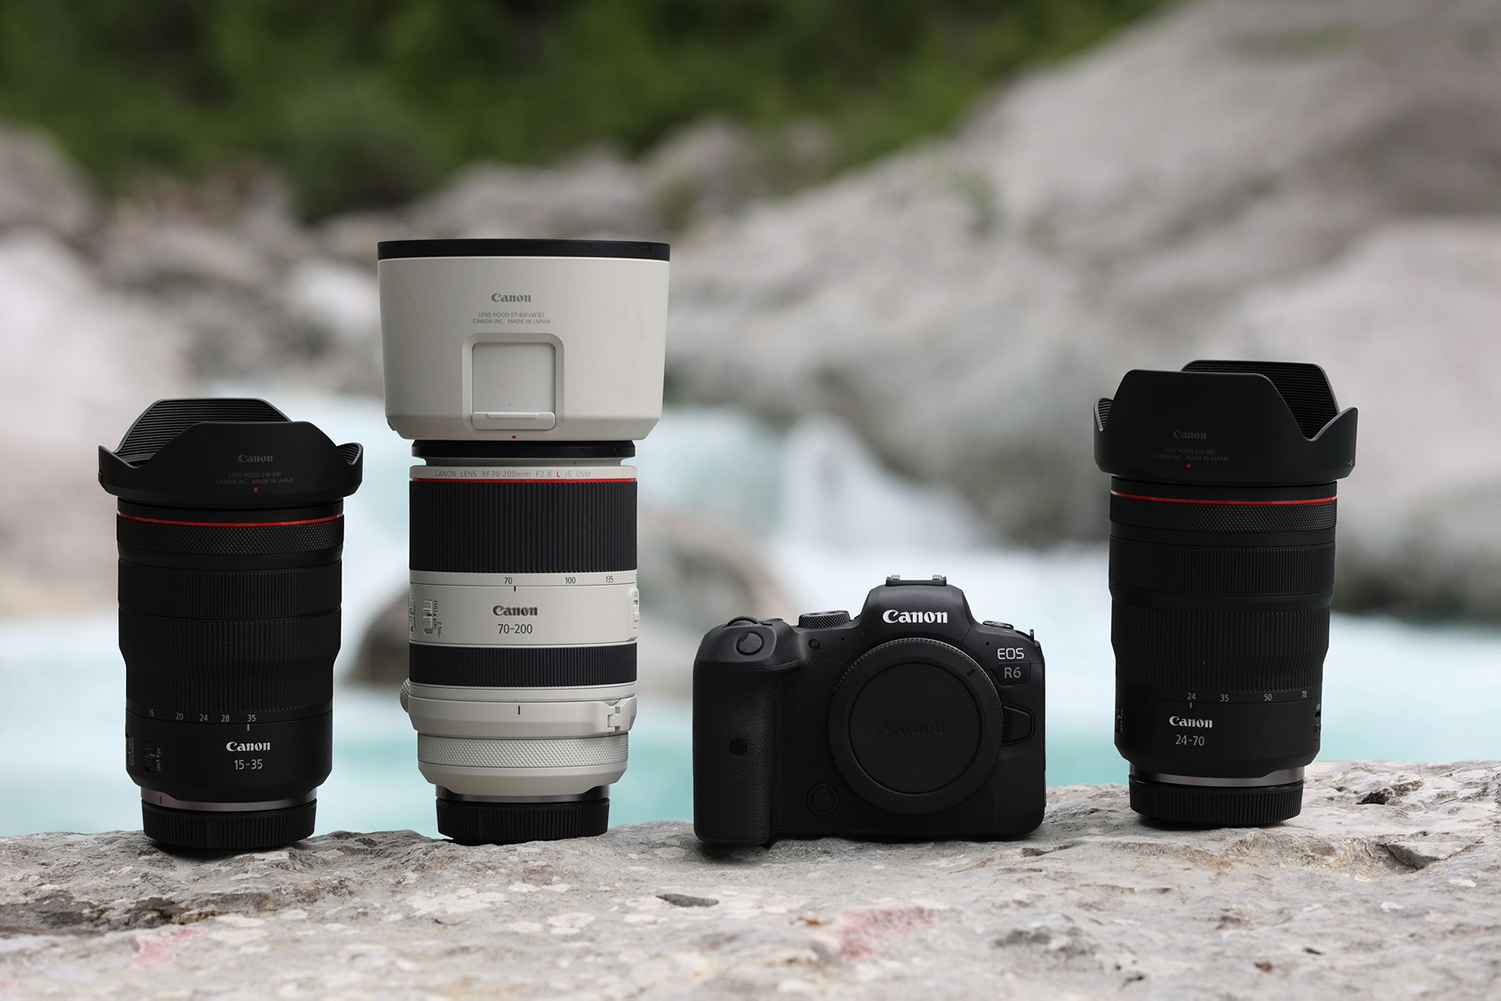 A Canon mirrorless setup with the R6 camera